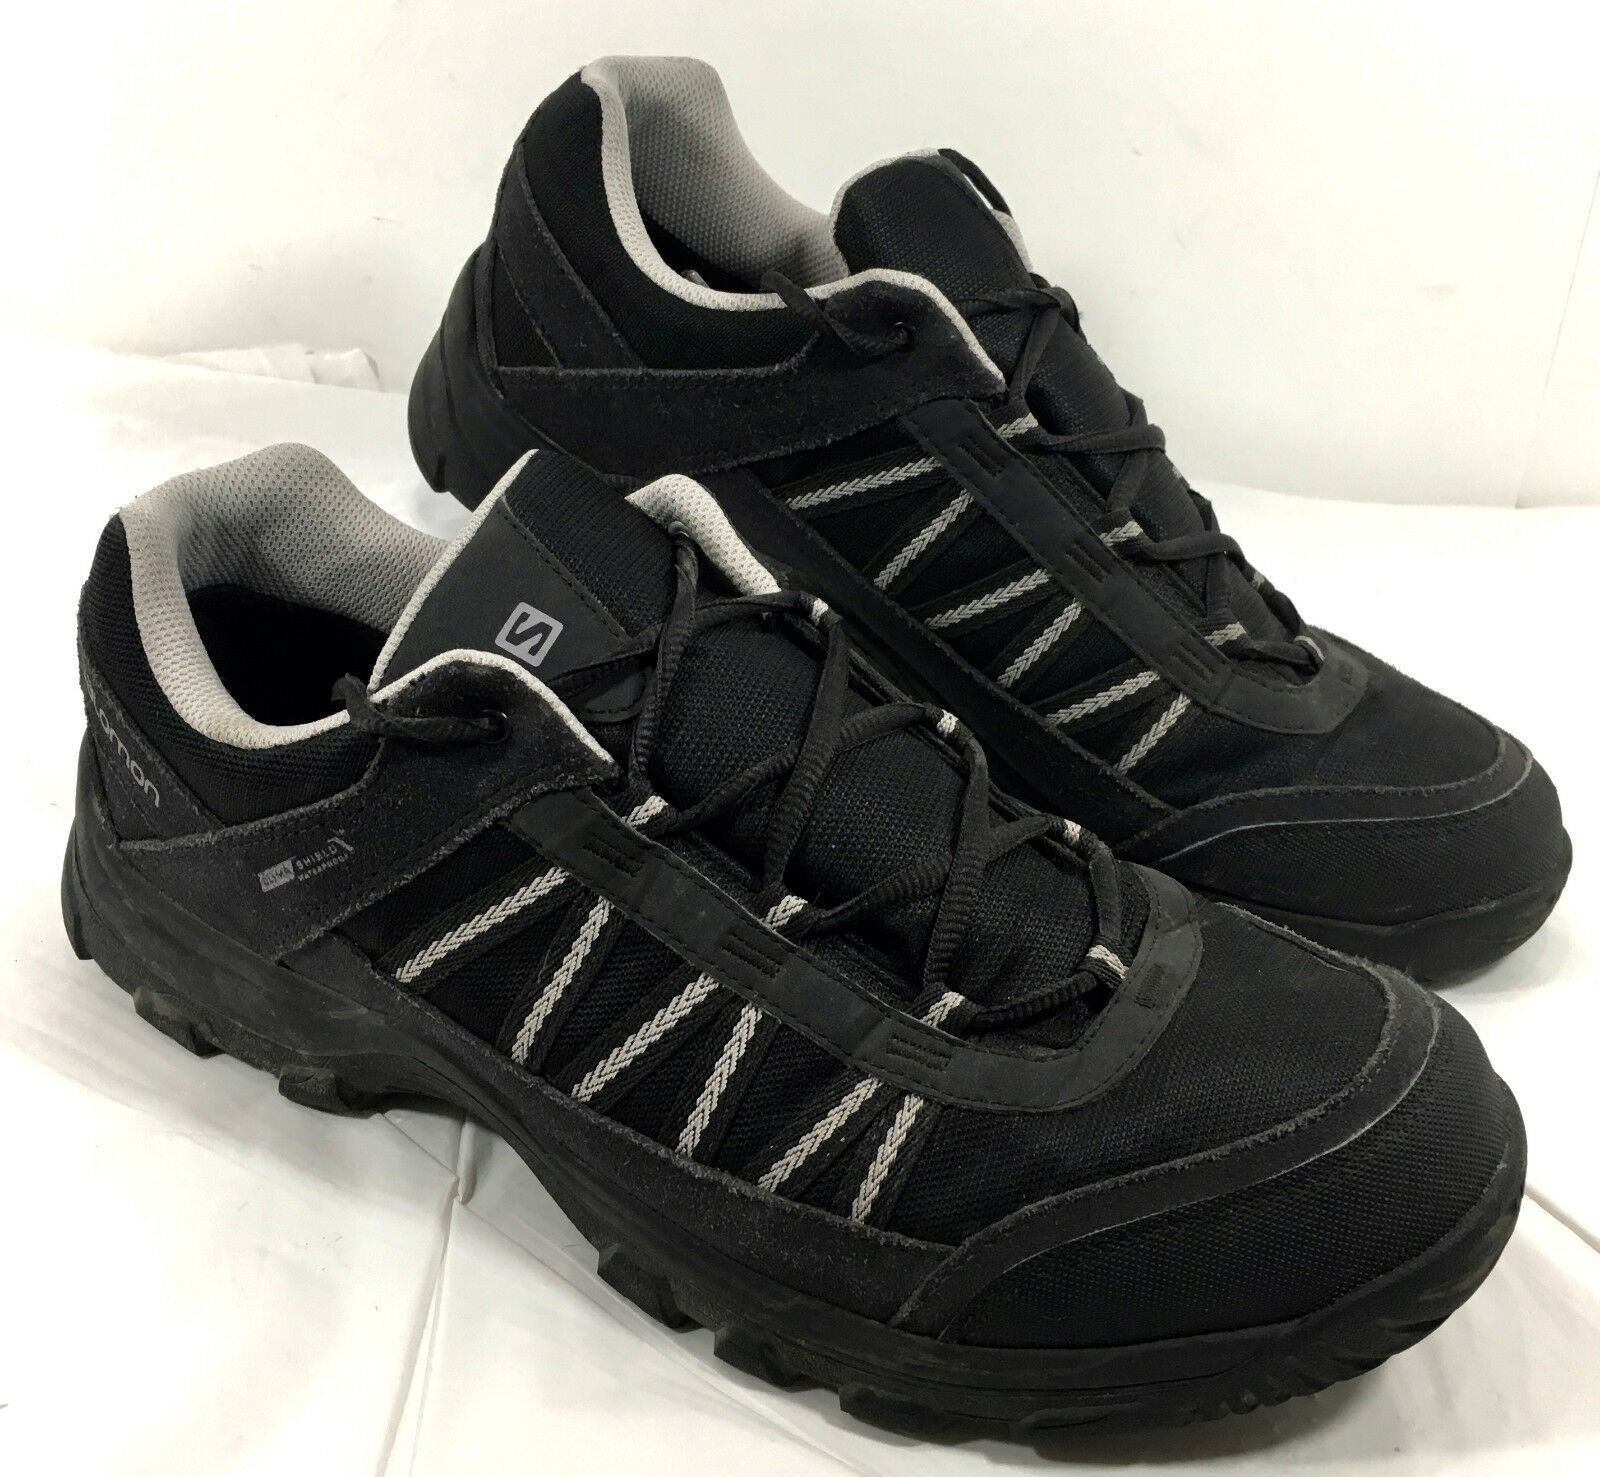 uk availability bd288 e5189 Men s EUC Salomon KEYSTONE Trail shoes Waterproof Sz 11